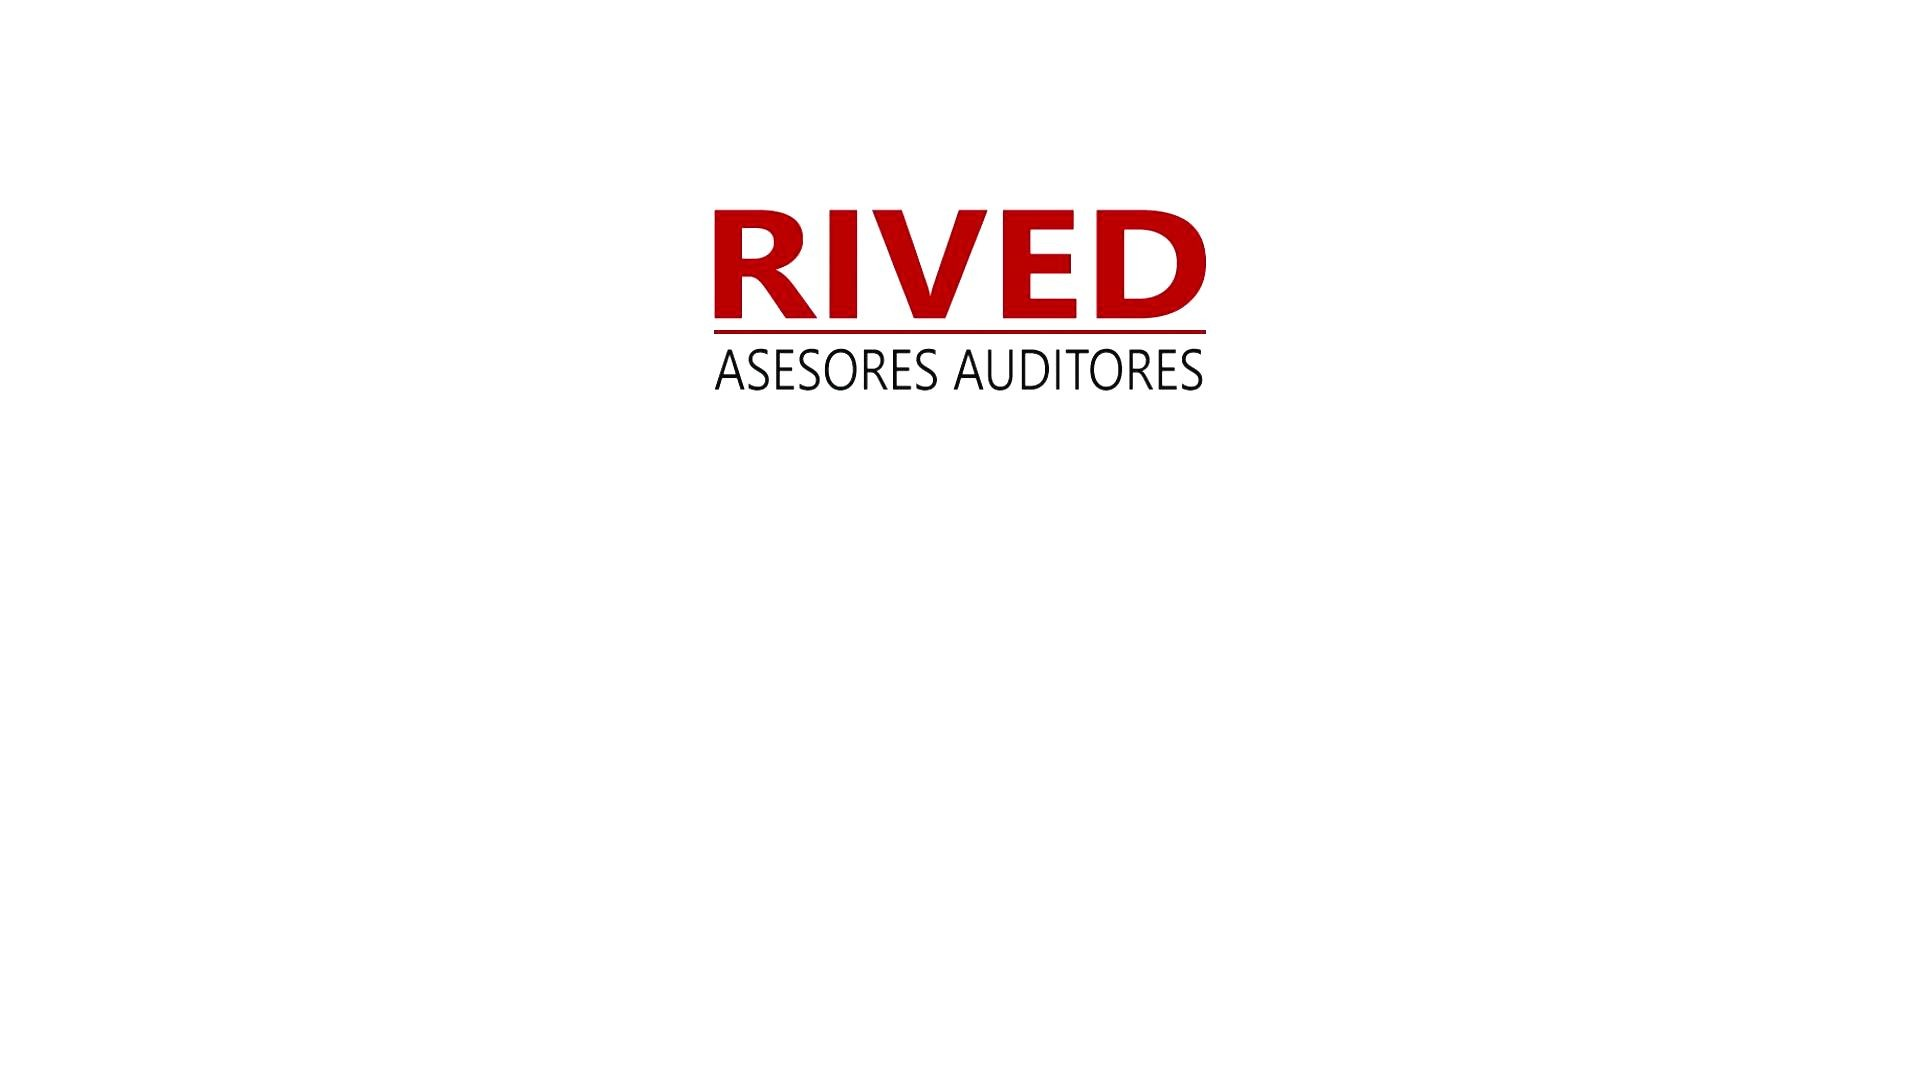 Asesores Auditores